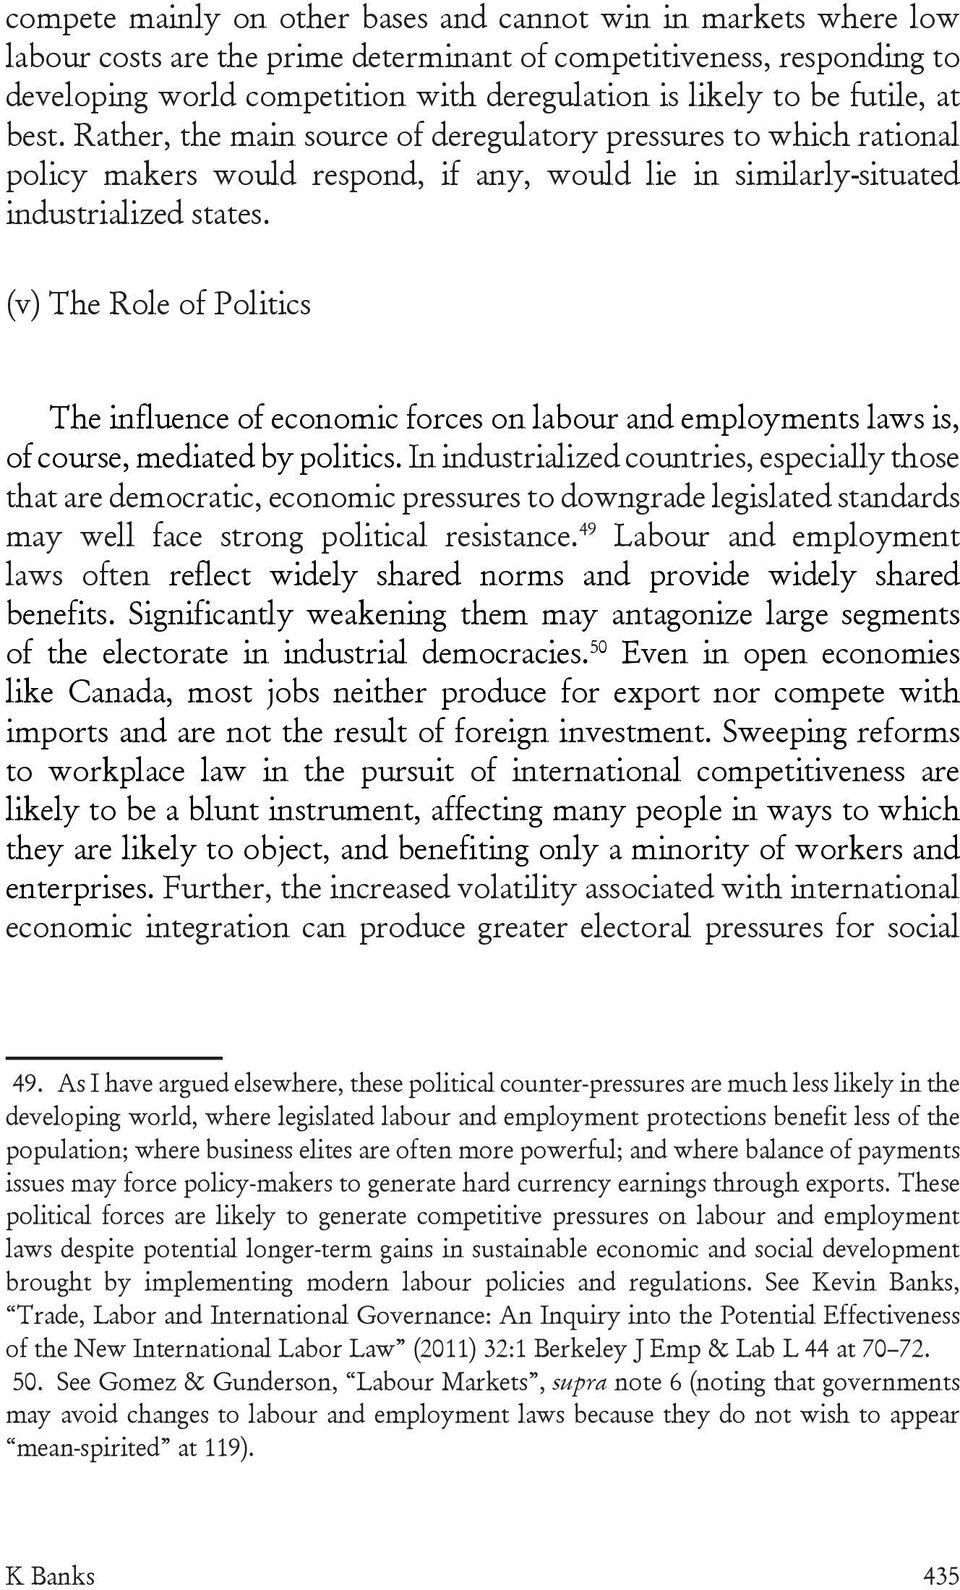 (v) The Role of Politics The influence of economic forces on labour and employments laws is, of course, mediated by politics.